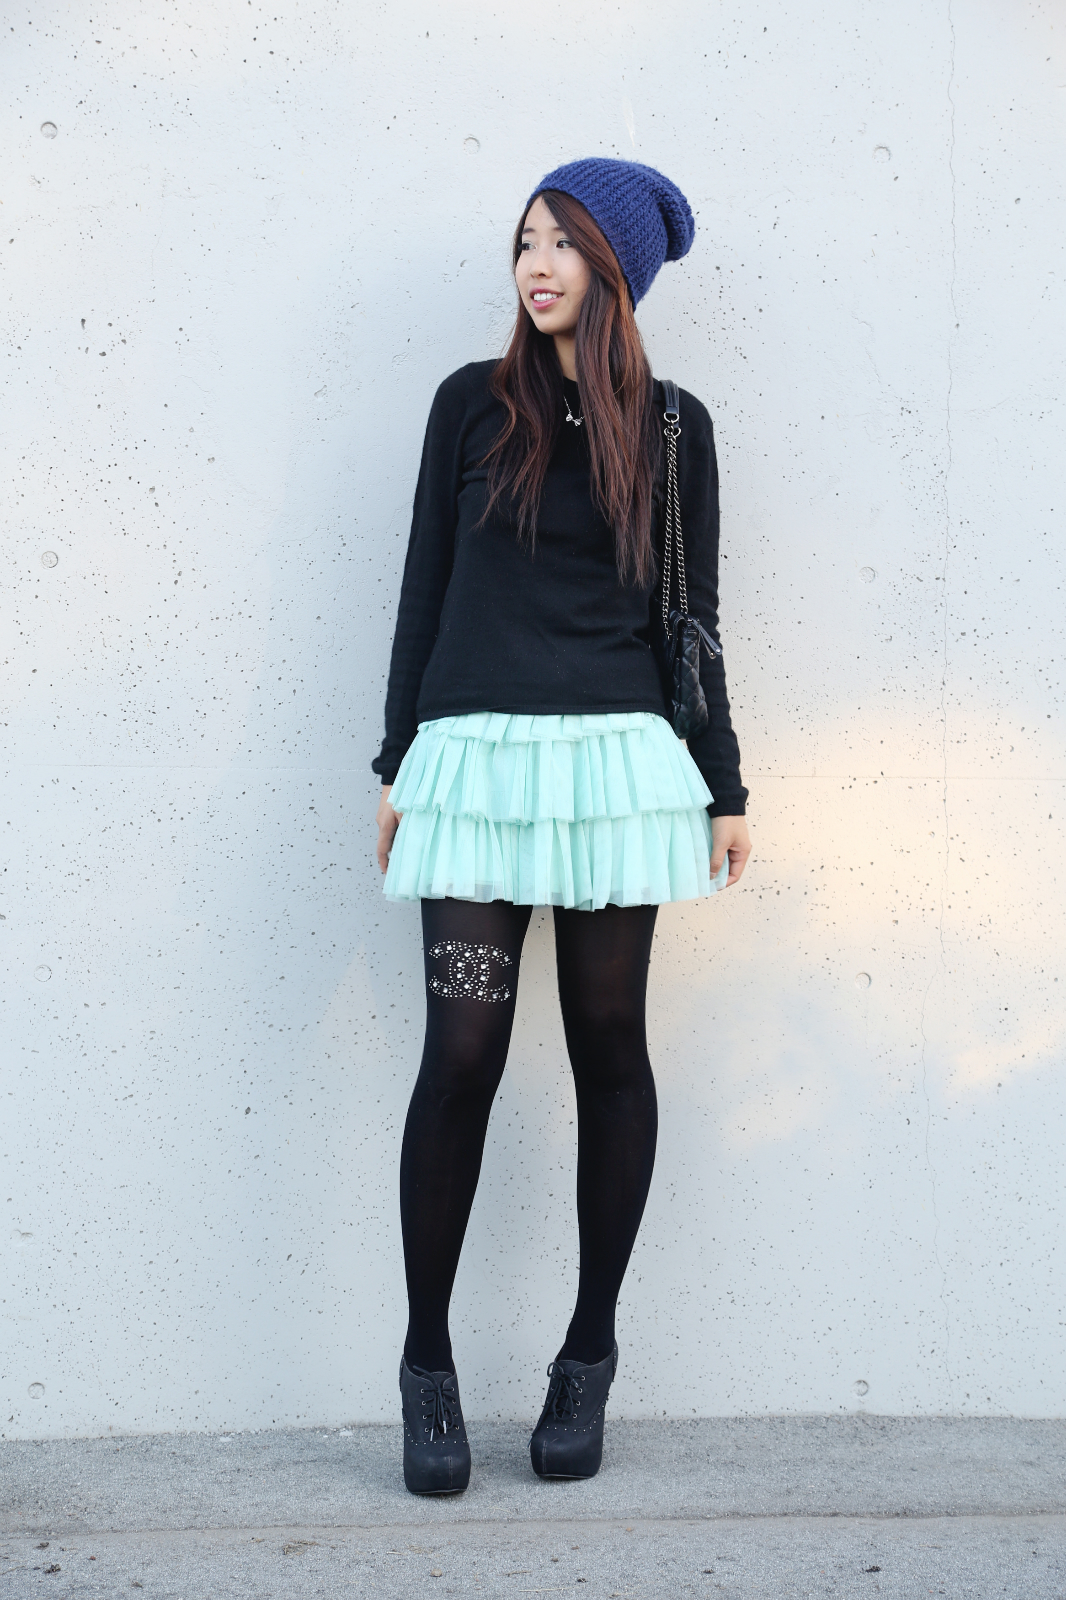 chanel, embellished, tights, chic, edgy, cool, ulzzang, asian, girl, cashmere, sweater, teal, seqiuns, tutu, aquamarine, unique, charisma c, tights, wraphilosophy, anainspirations, skater, punk, cute, adorable, hairstyle, beanie, teen, girl, pretty, korean, chinese, japanese, style, ootd, outfit, dress, kawaii, ally gong,